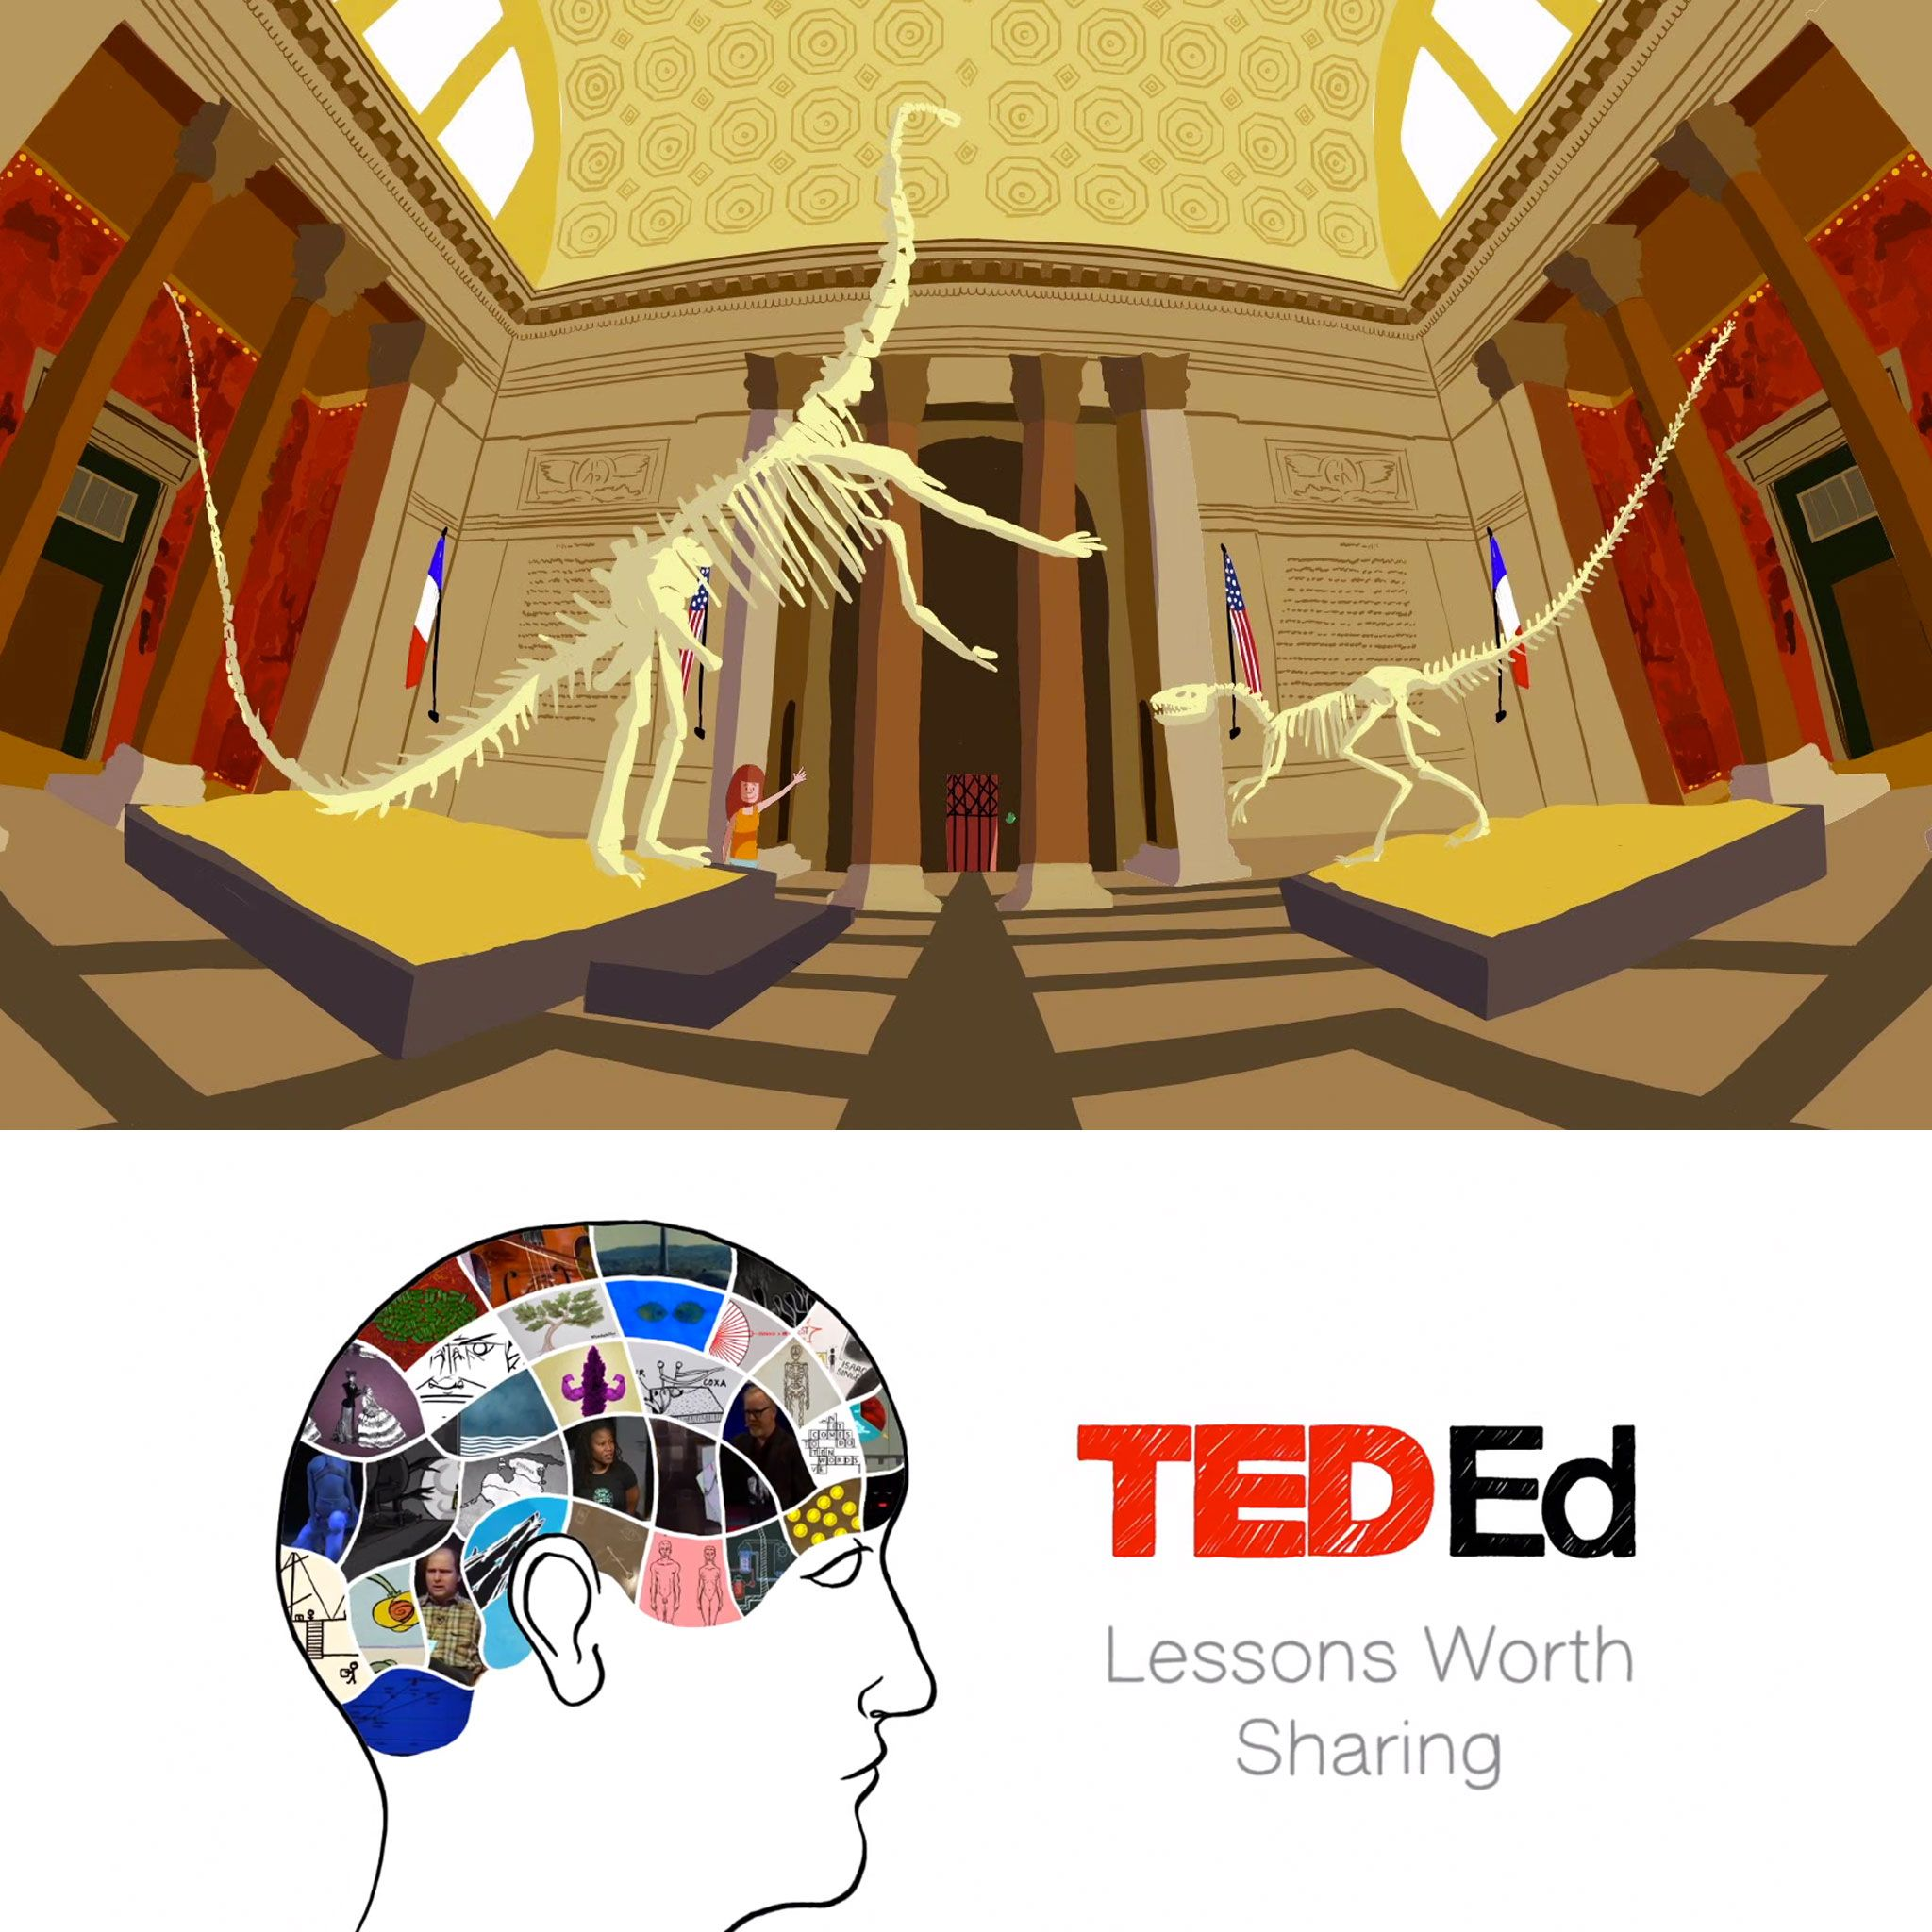 In This Five Minute Ted Ed Video You Ll Learn That Within Natural History Museums Scientists